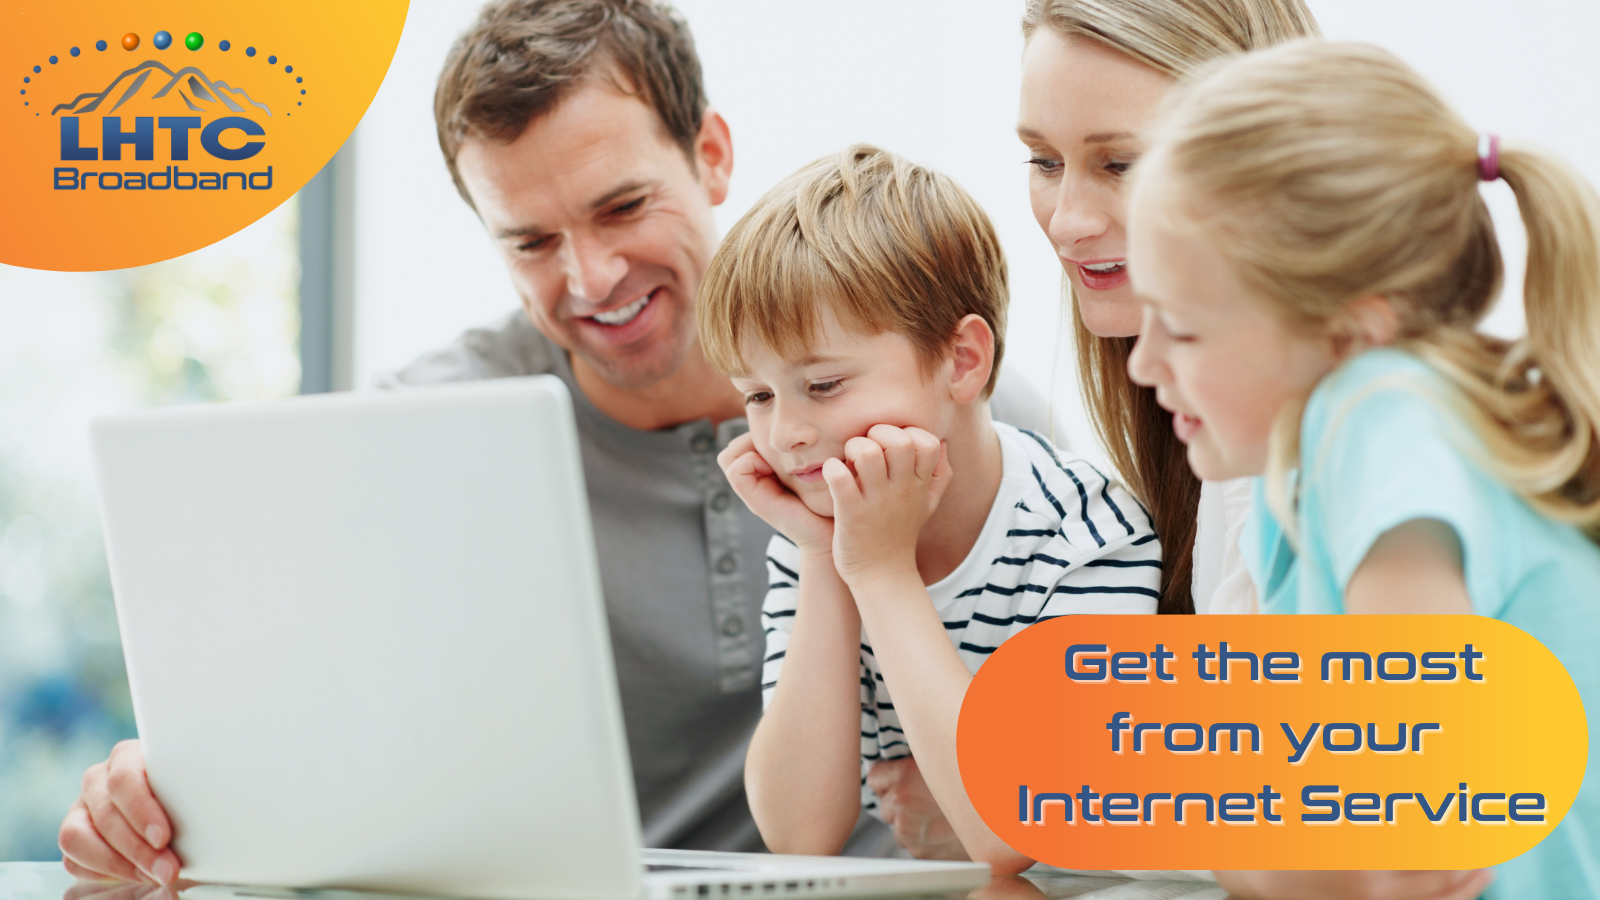 Get the Most from Your Internet Service!